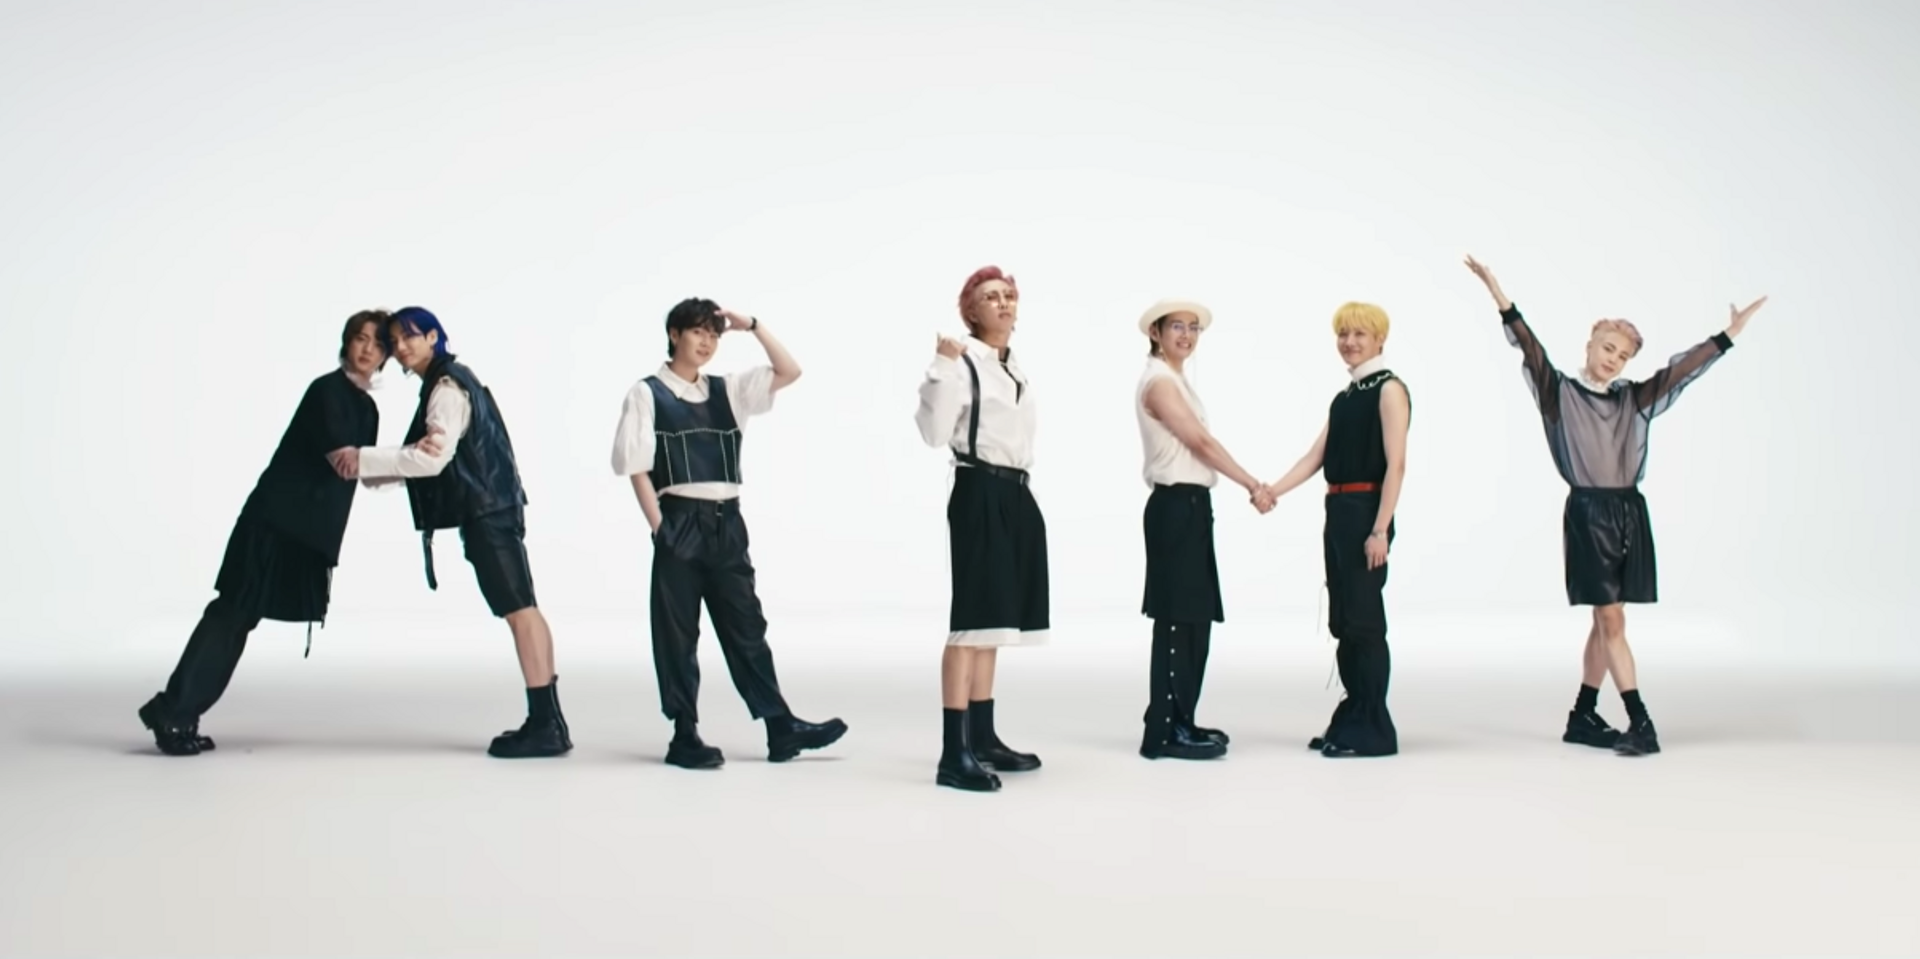 BTS' 'Butter' gets over 10 million views in less than 15 minutes, breaks record for biggest music video premiere on YouTube – watch